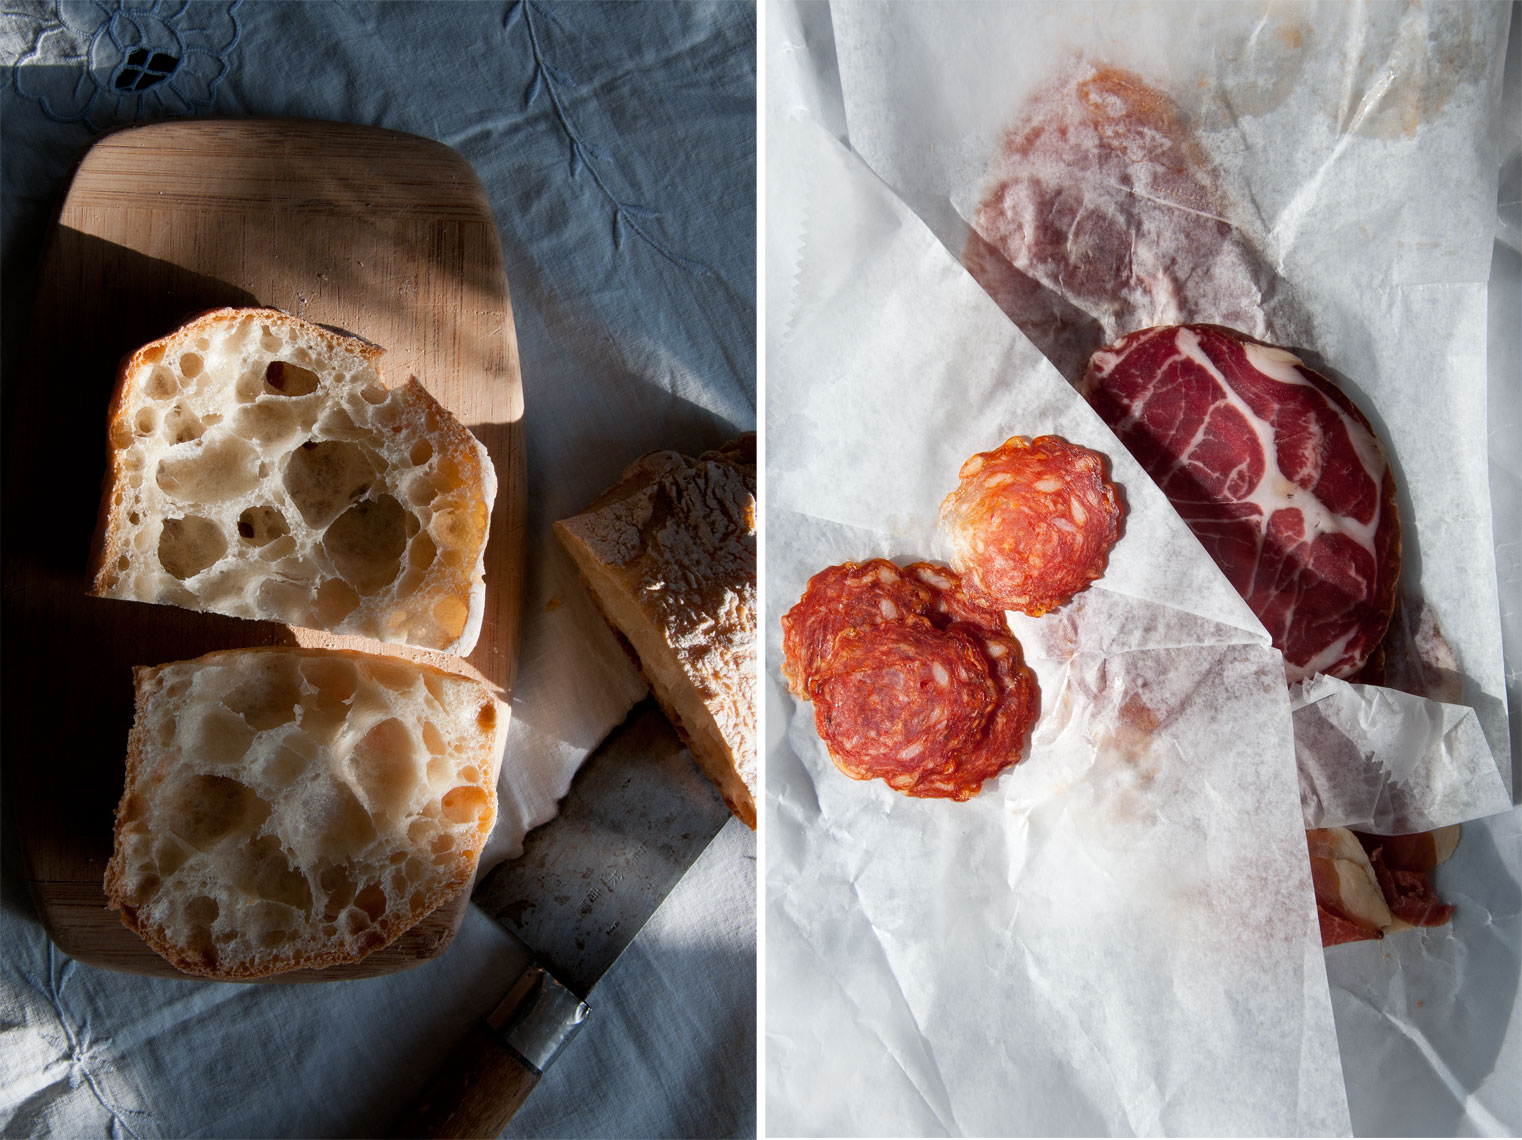 NYC Food Photographer – Bread and Prosciutto